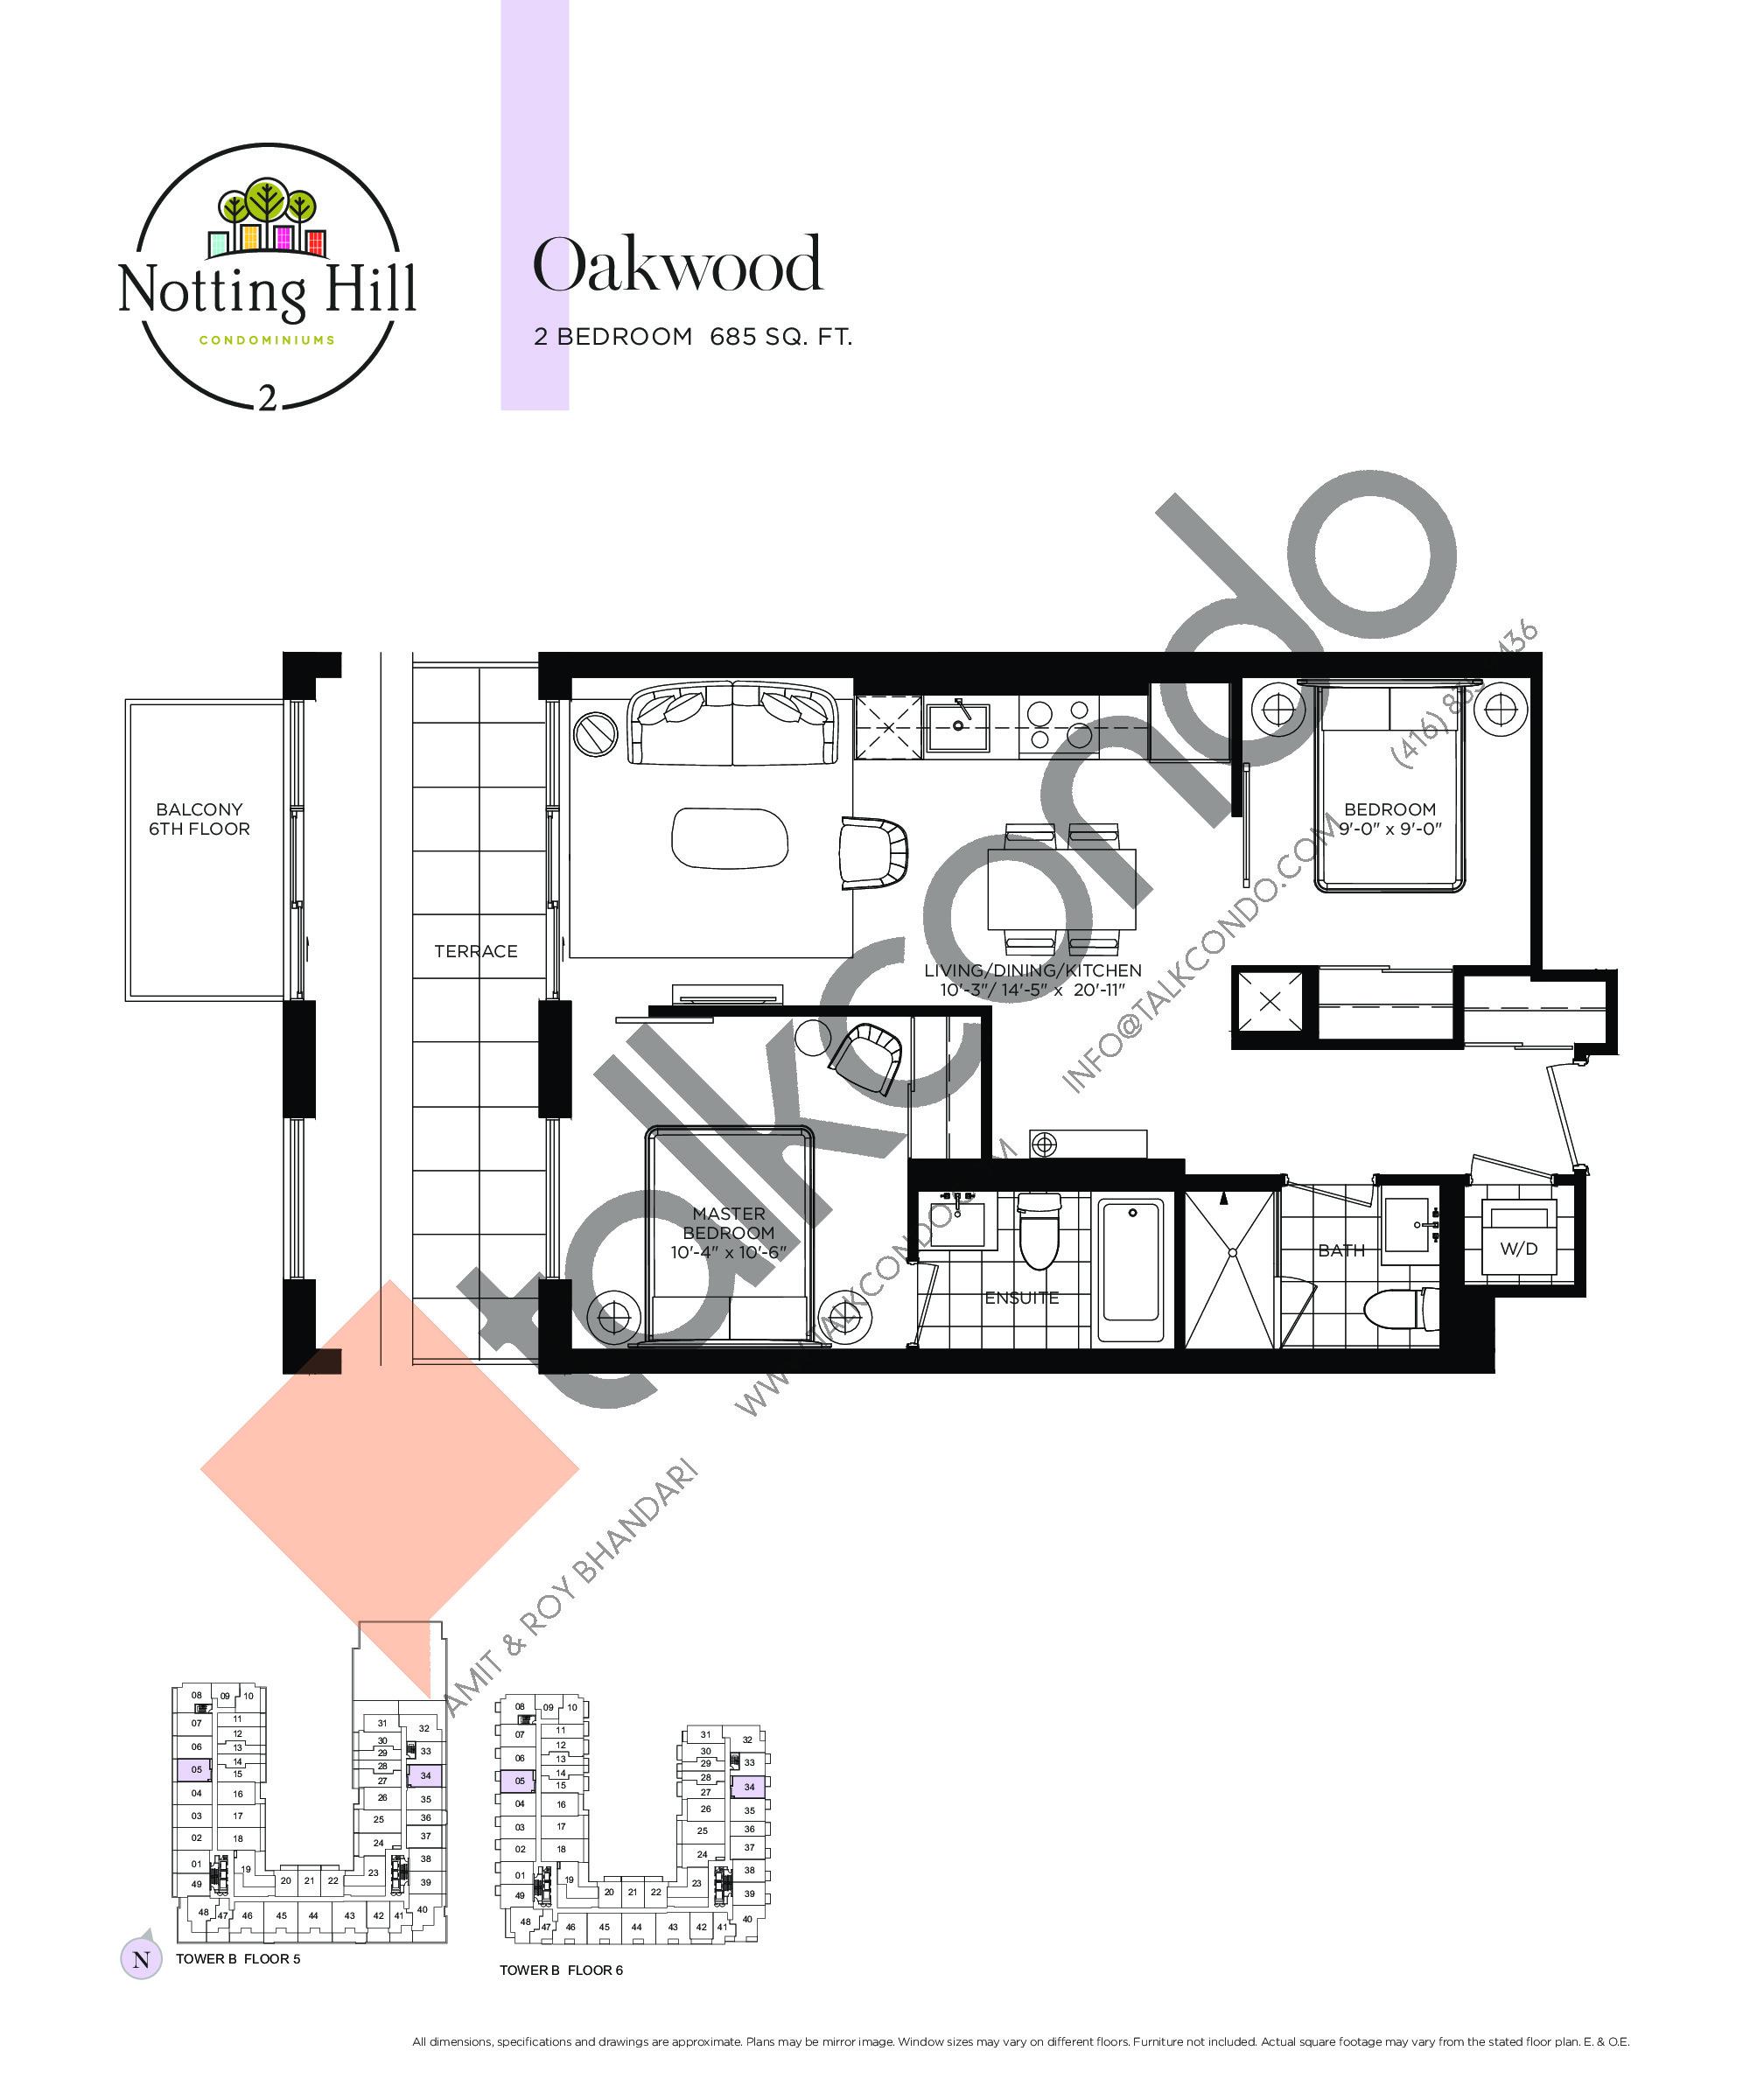 Oakwood Floor Plan at Notting Hill Phase 3 Condos - 685 sq.ft